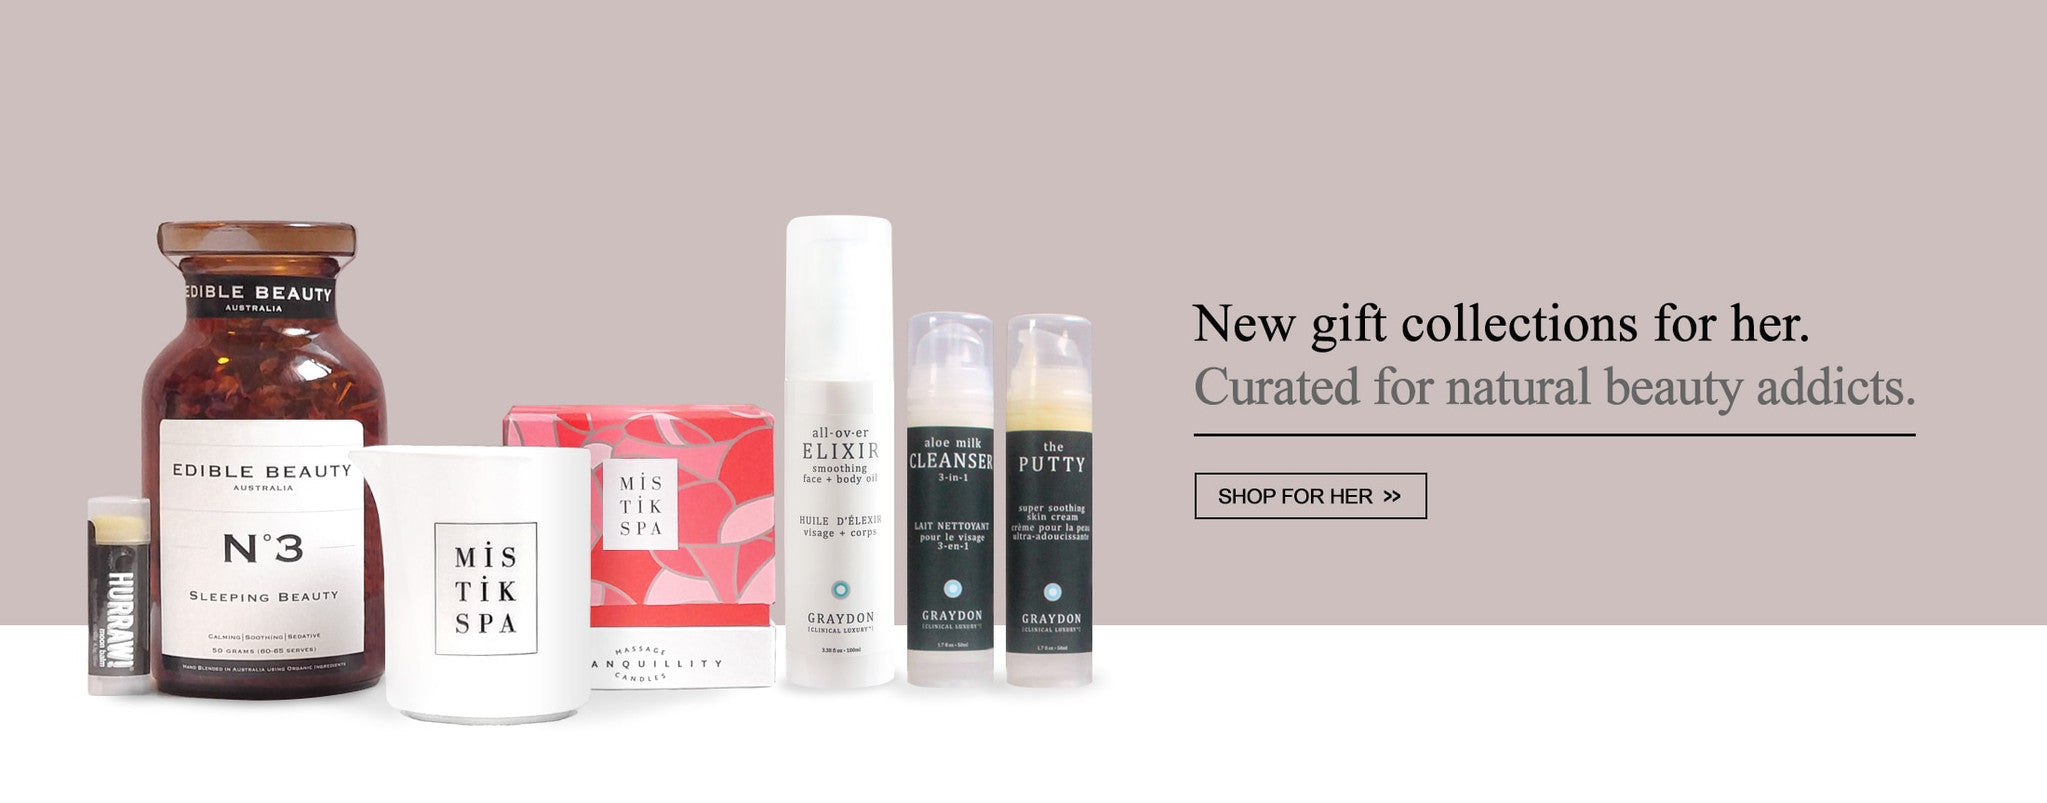 Gift of Her - Natural Beauty Skincare